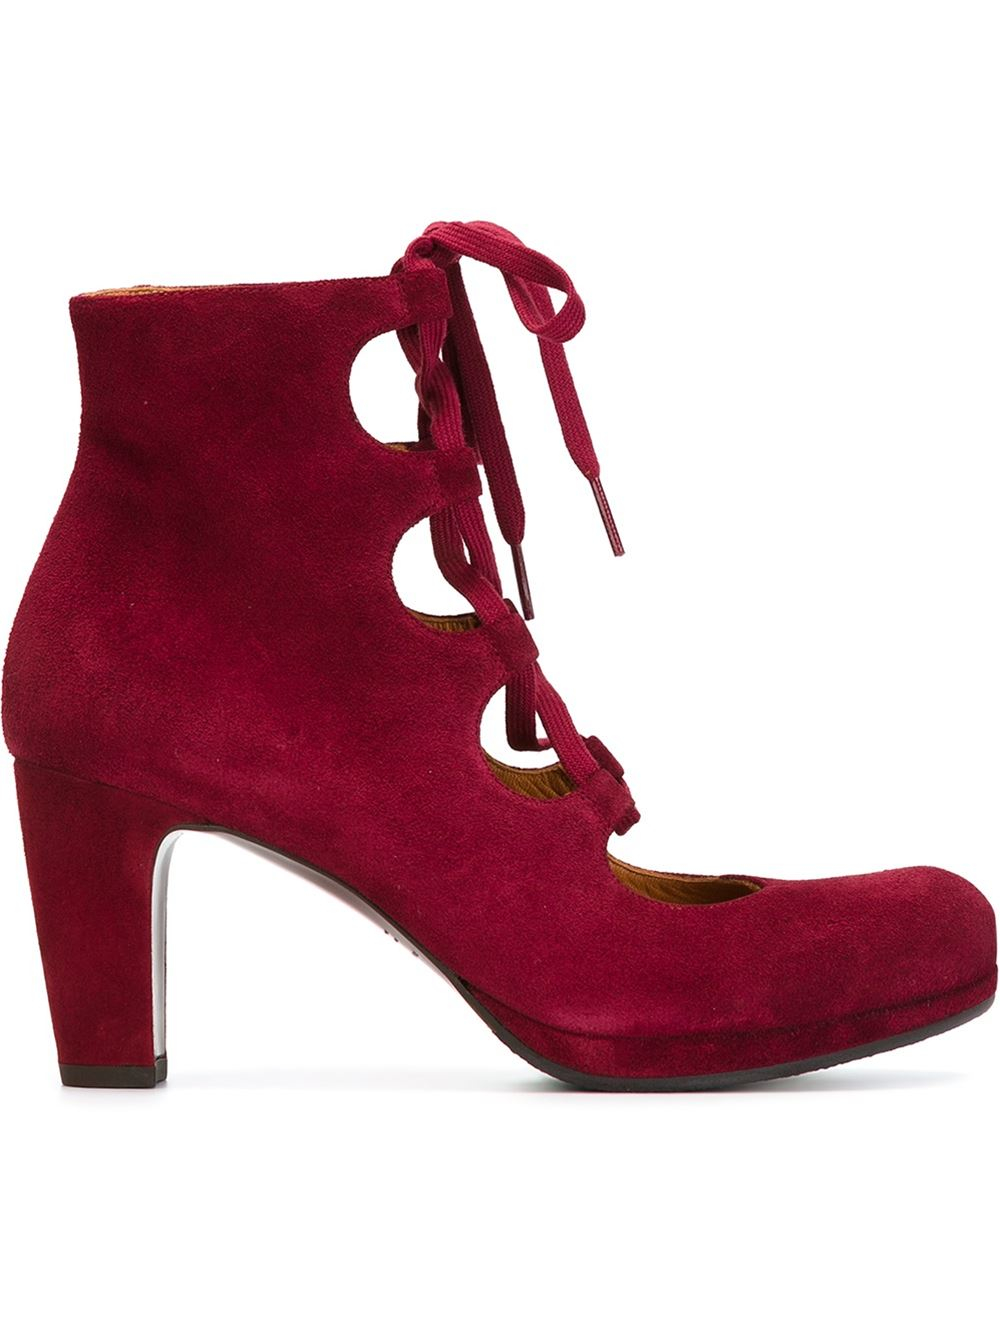 Chie Mihara Red Shoes